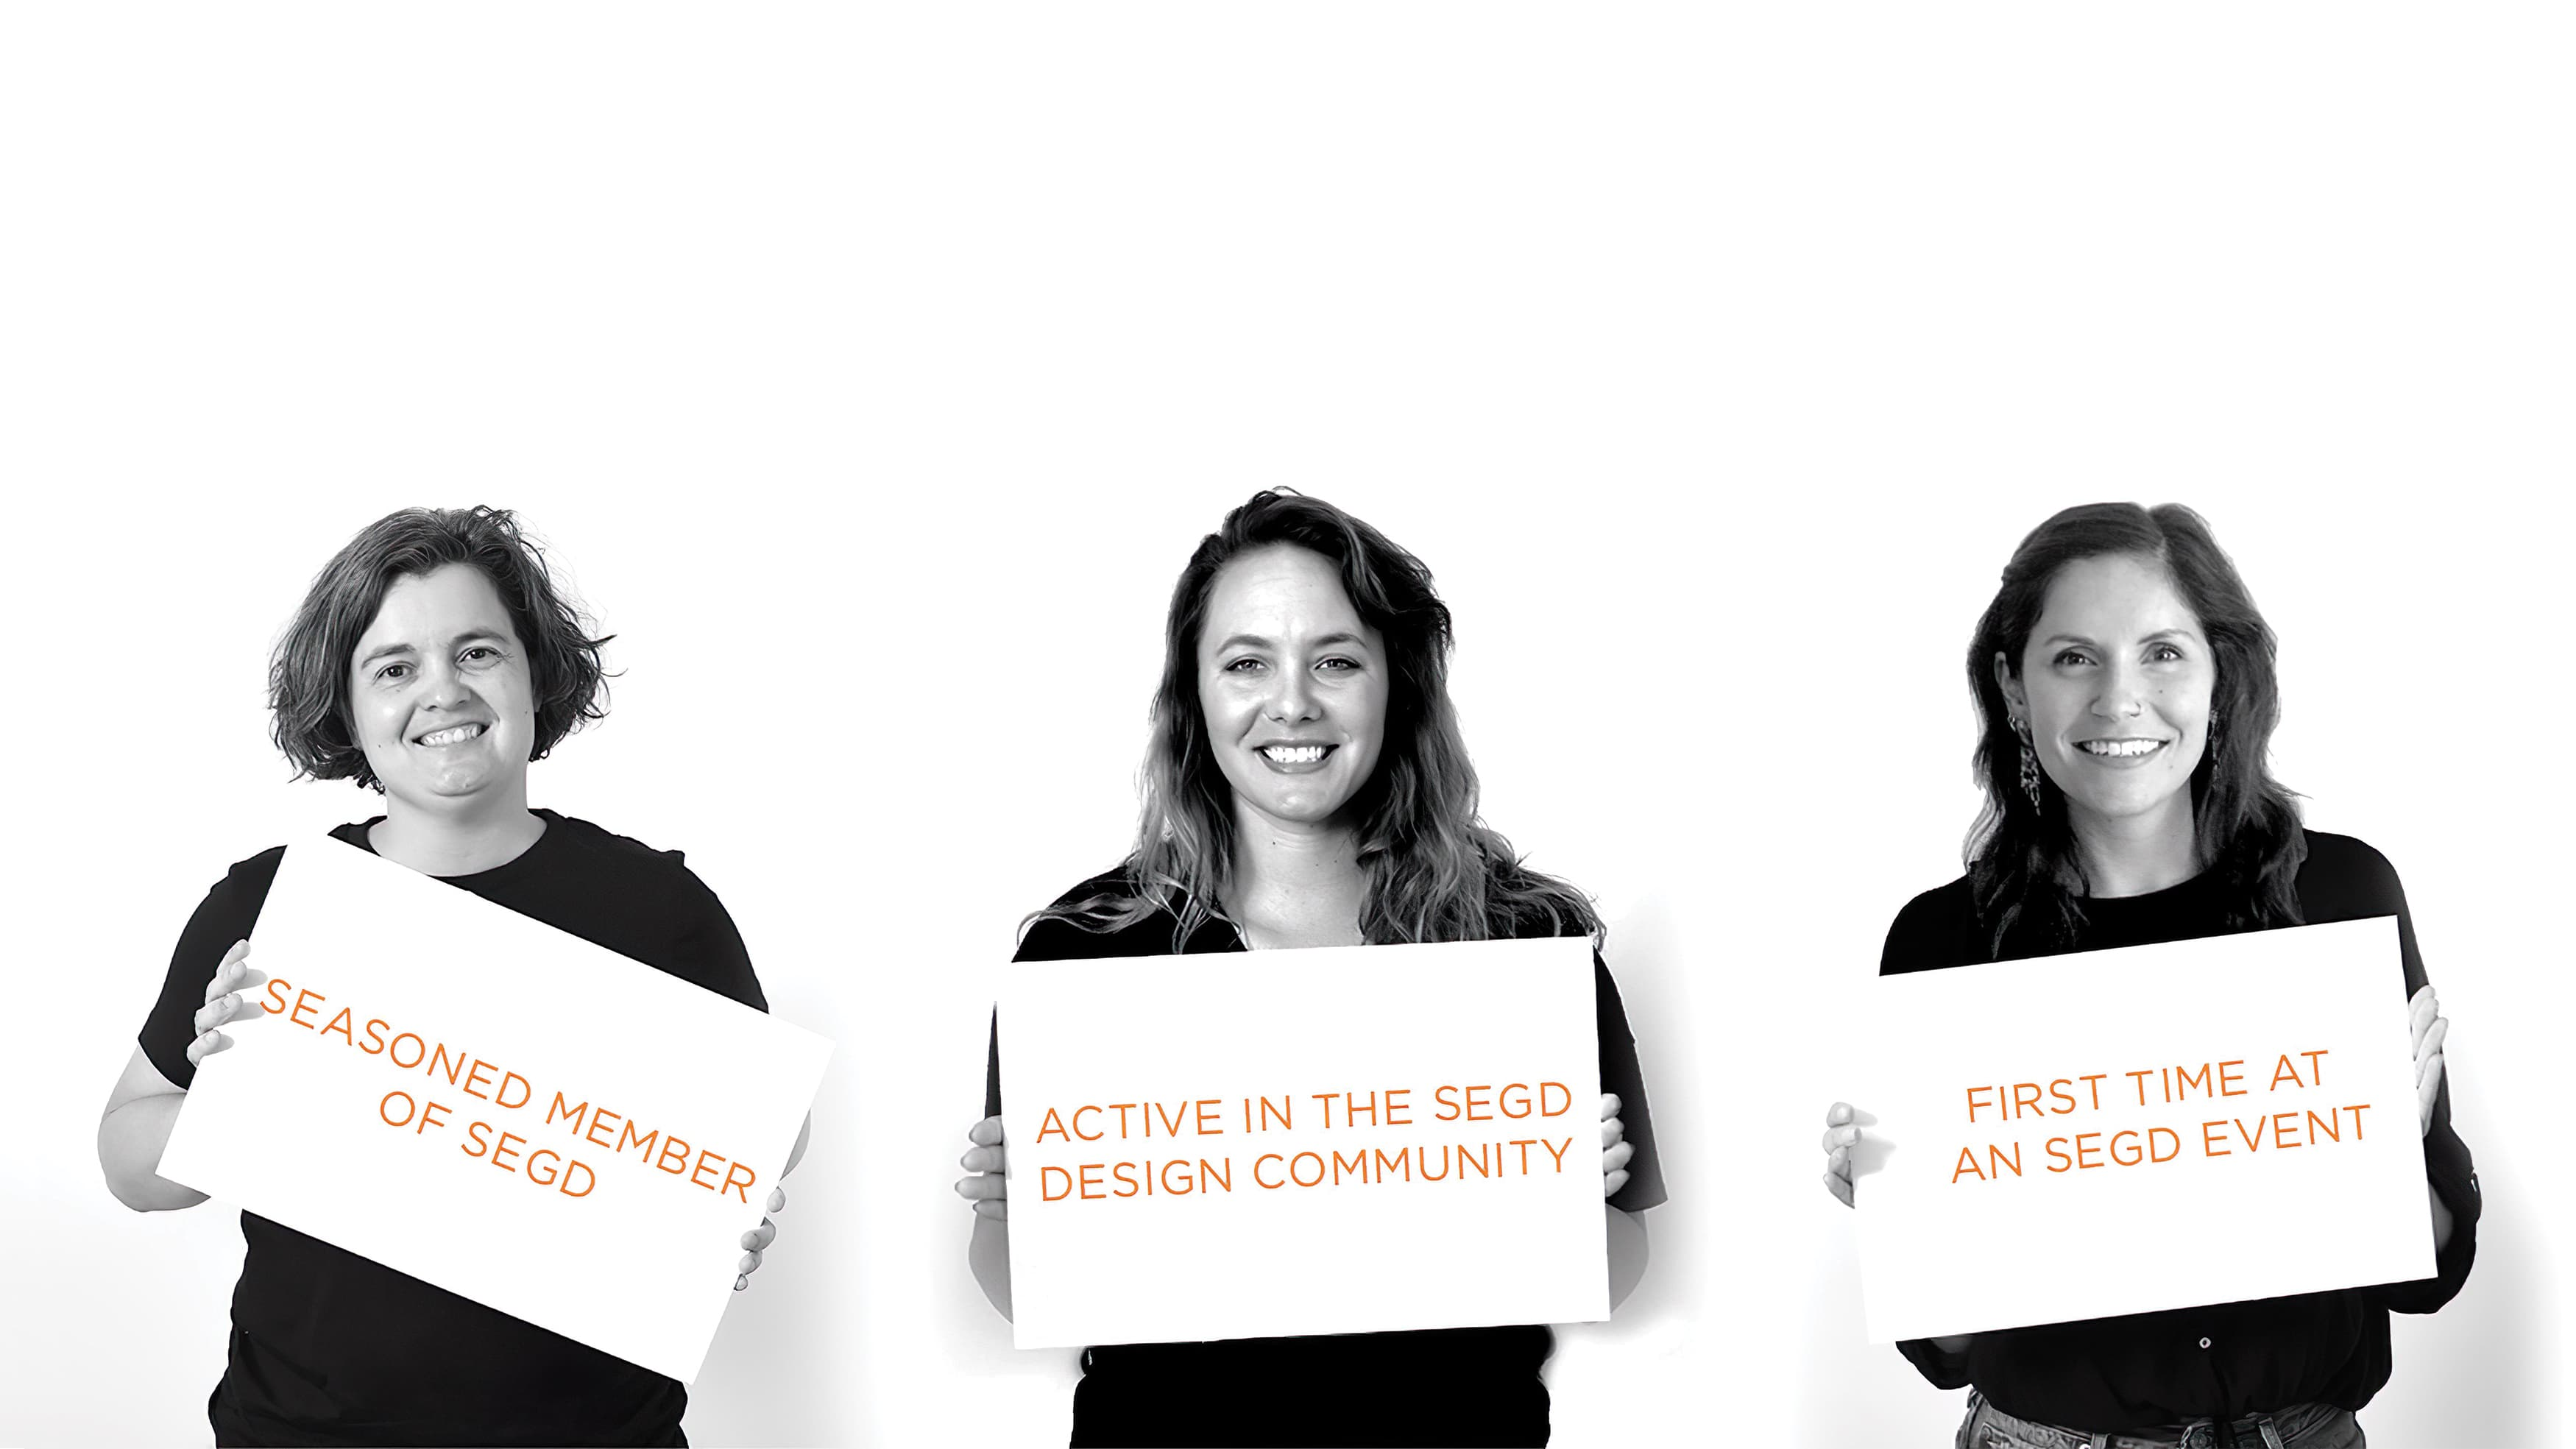 Three RSM designers give their thoughts on an SEGD event they attended.